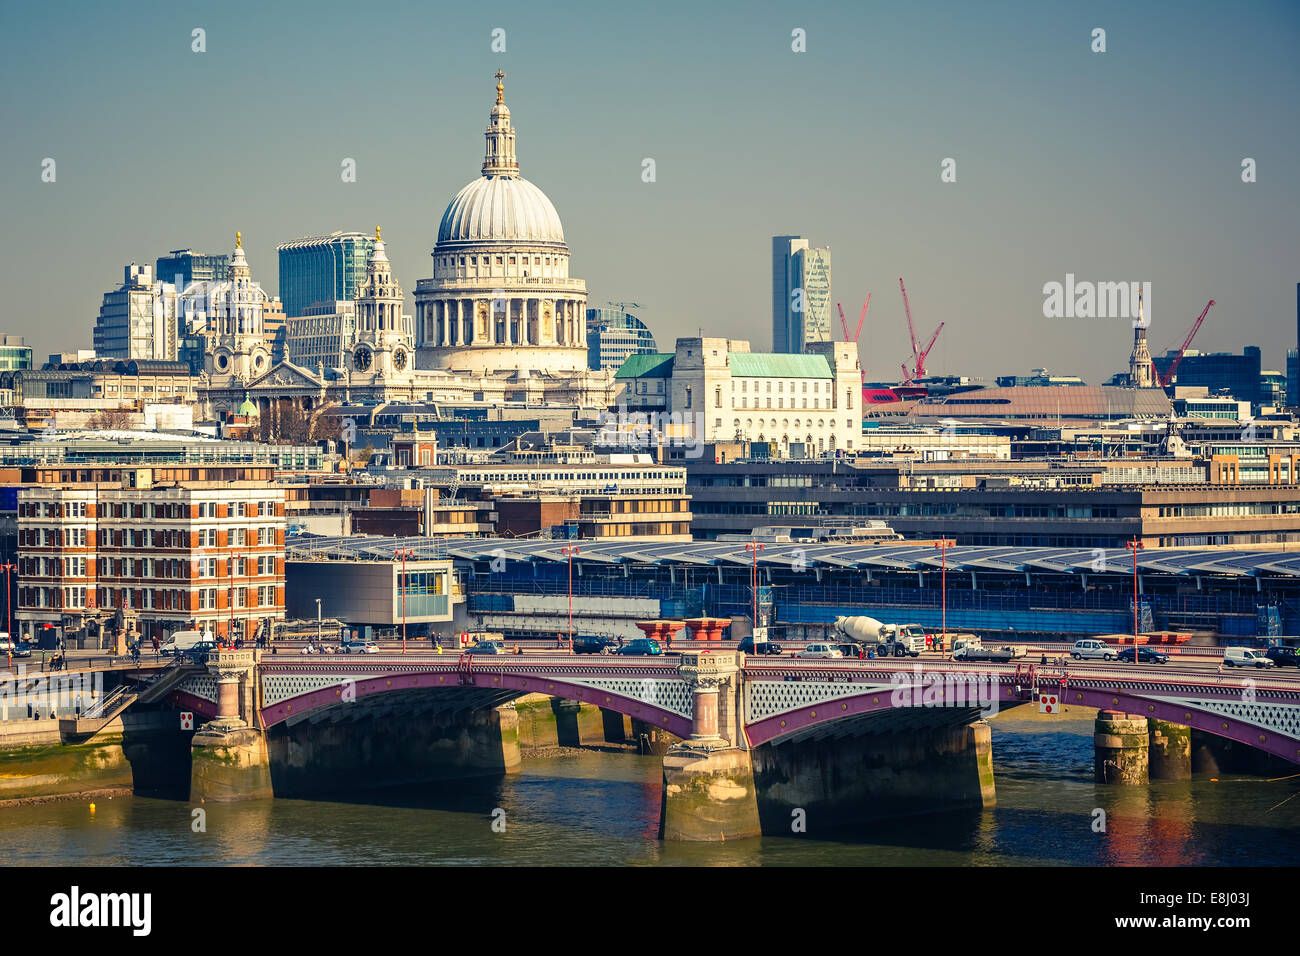 Aerial view on London city - Stock Image